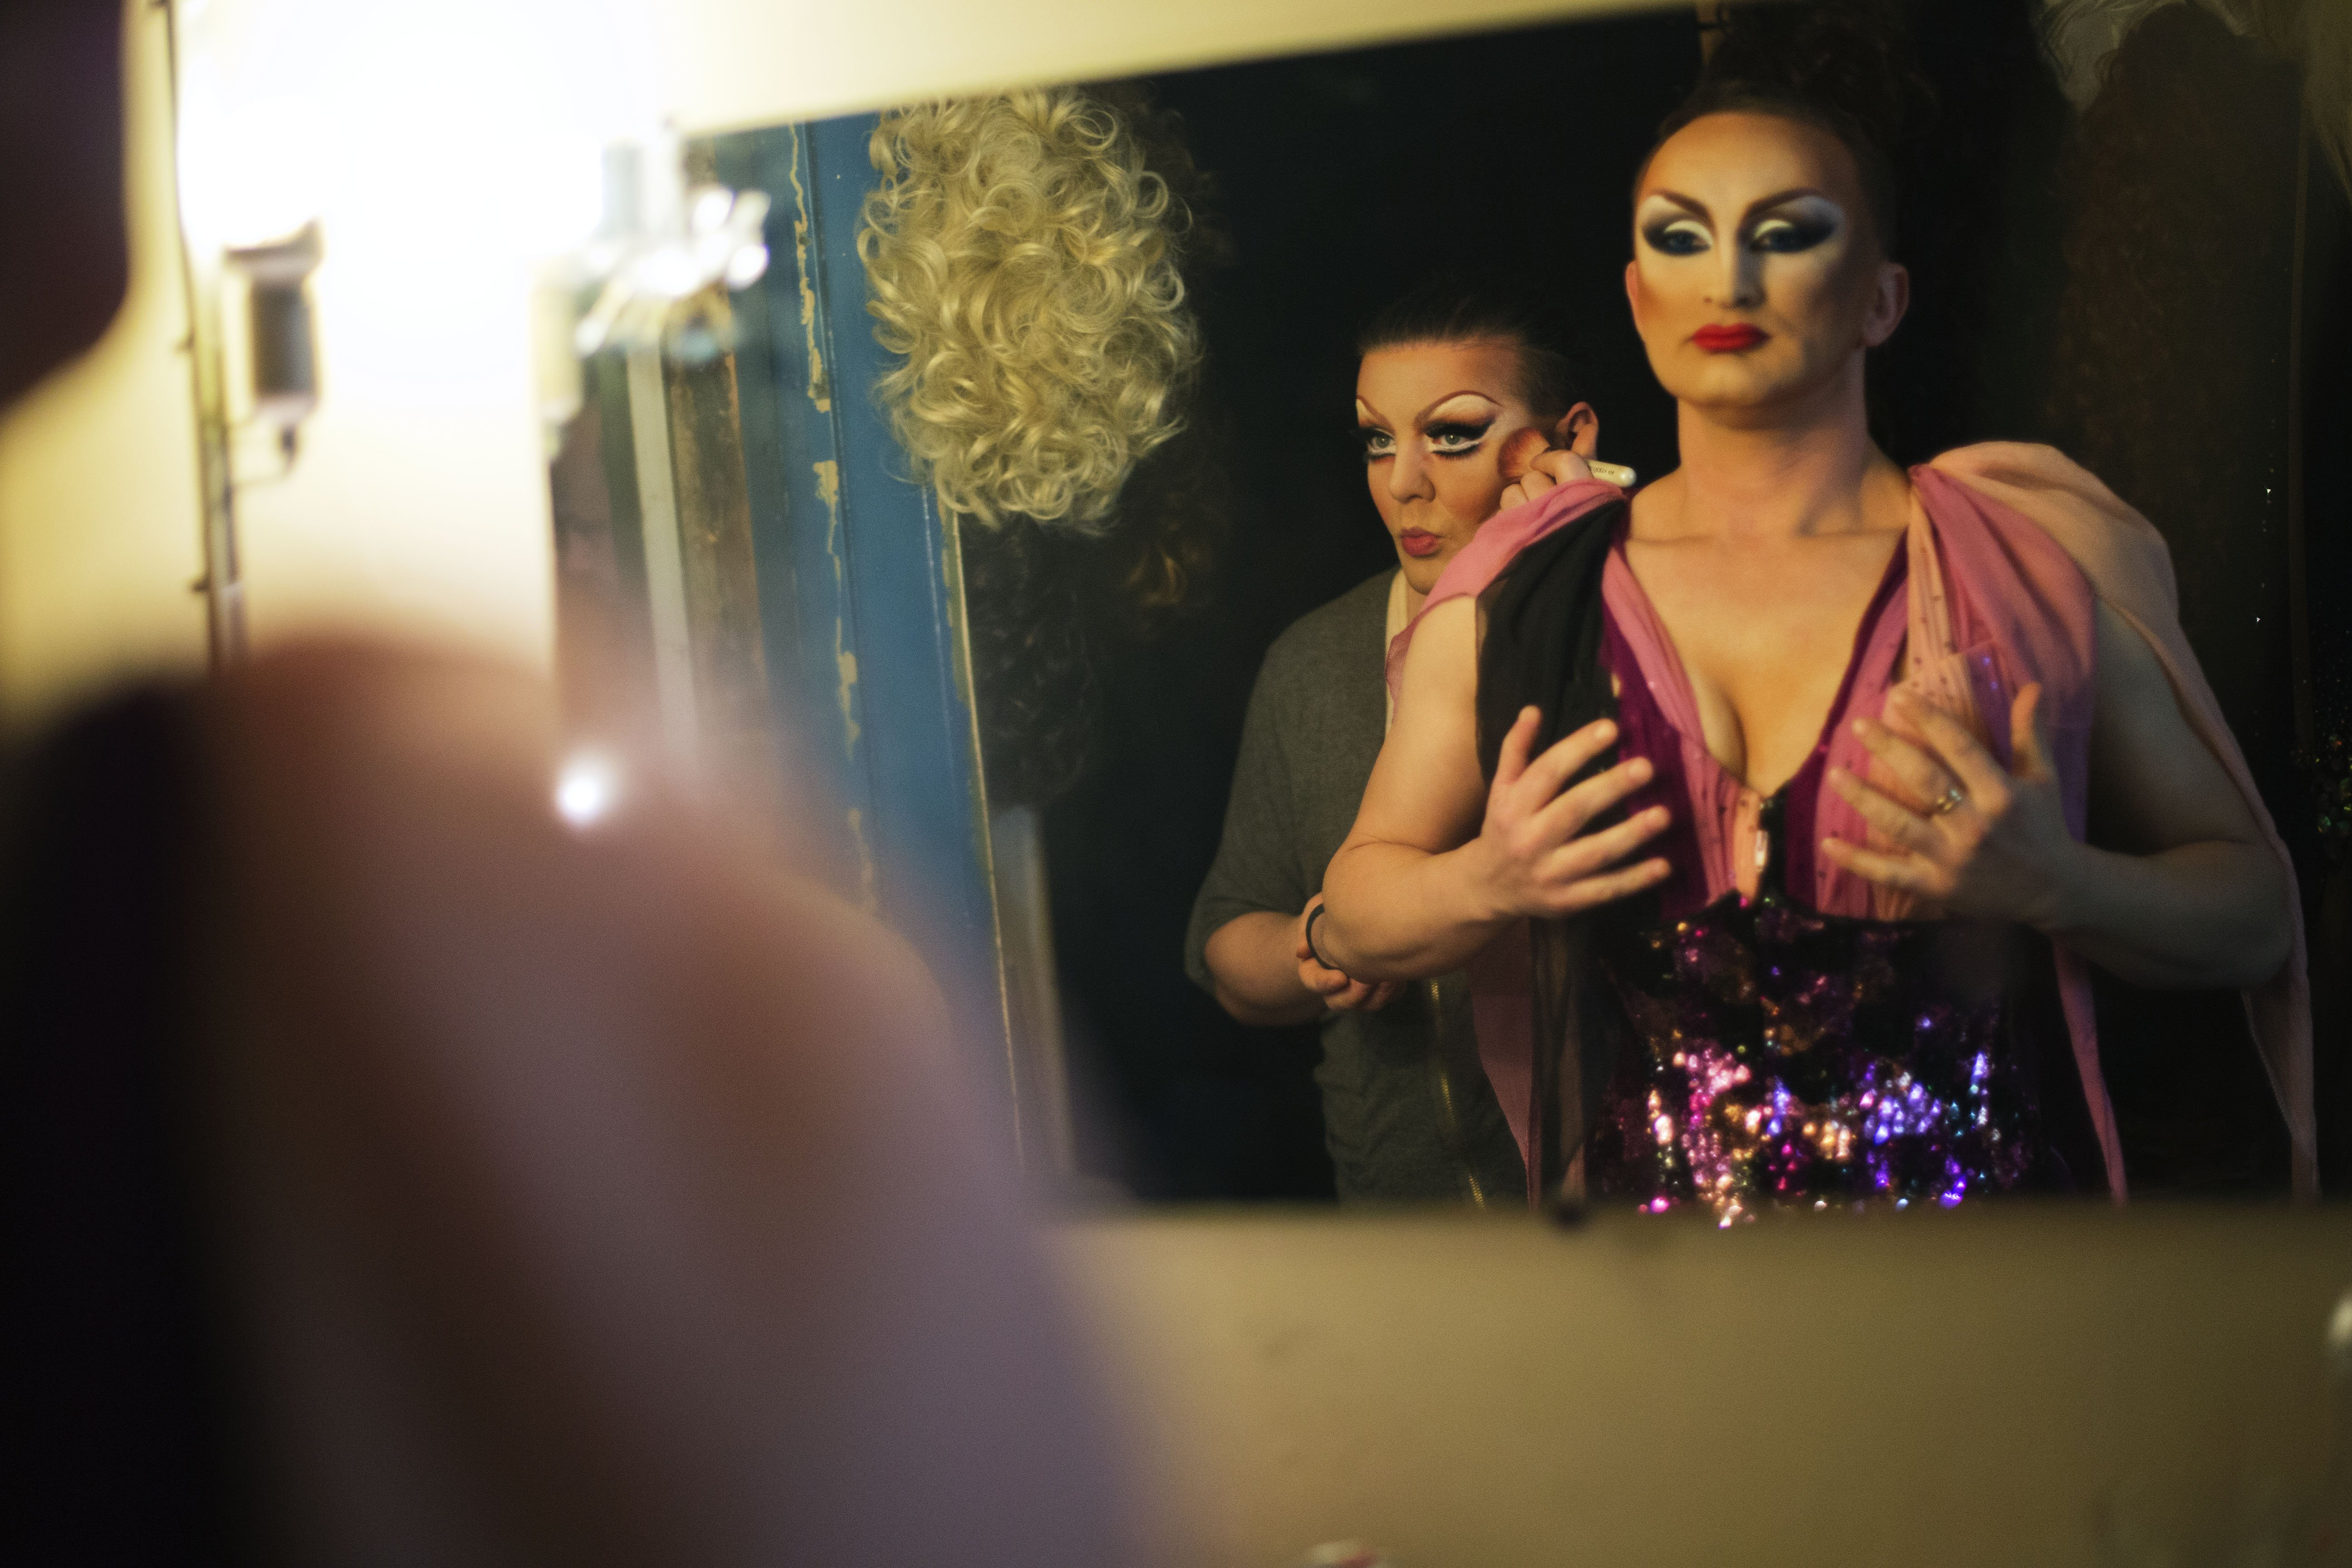 Performers Penelopa, right, and Veranda, left, get ready backstage before a performance at the Mayak cabaret, the most reputable gay club in Sochi, Feb. 8, 2014.